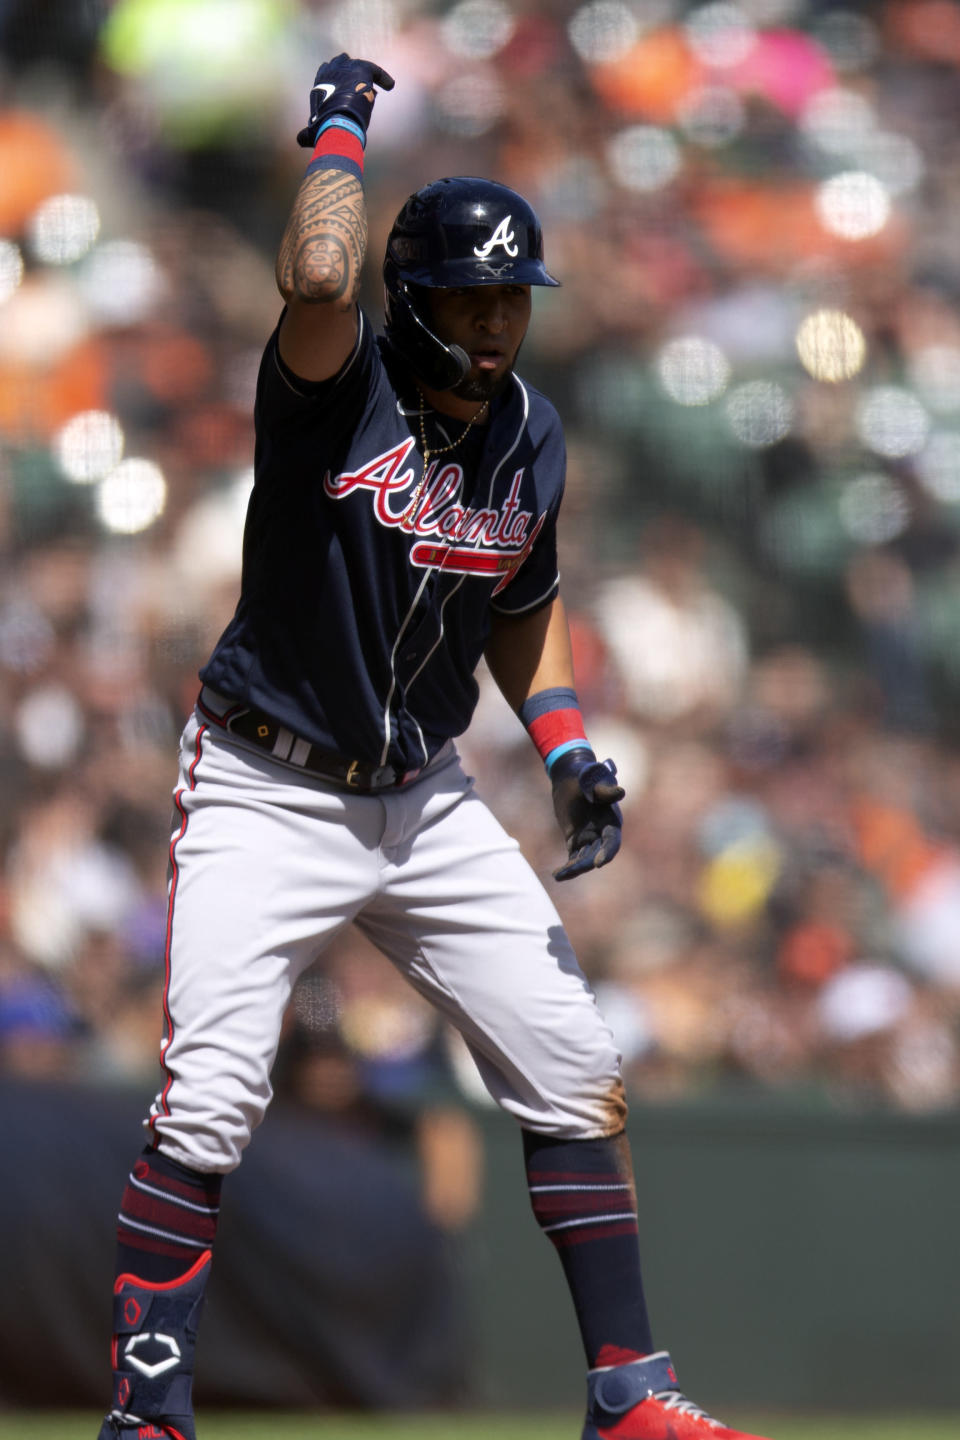 Atlanta Braves' Eddie Rosario gestures after hitting a triple against the San Francisco Giants during the fifth inning of a baseball game, Sunday, Sept. 19, 2021, in San Francisco. (AP Photo/D. Ross Cameron)